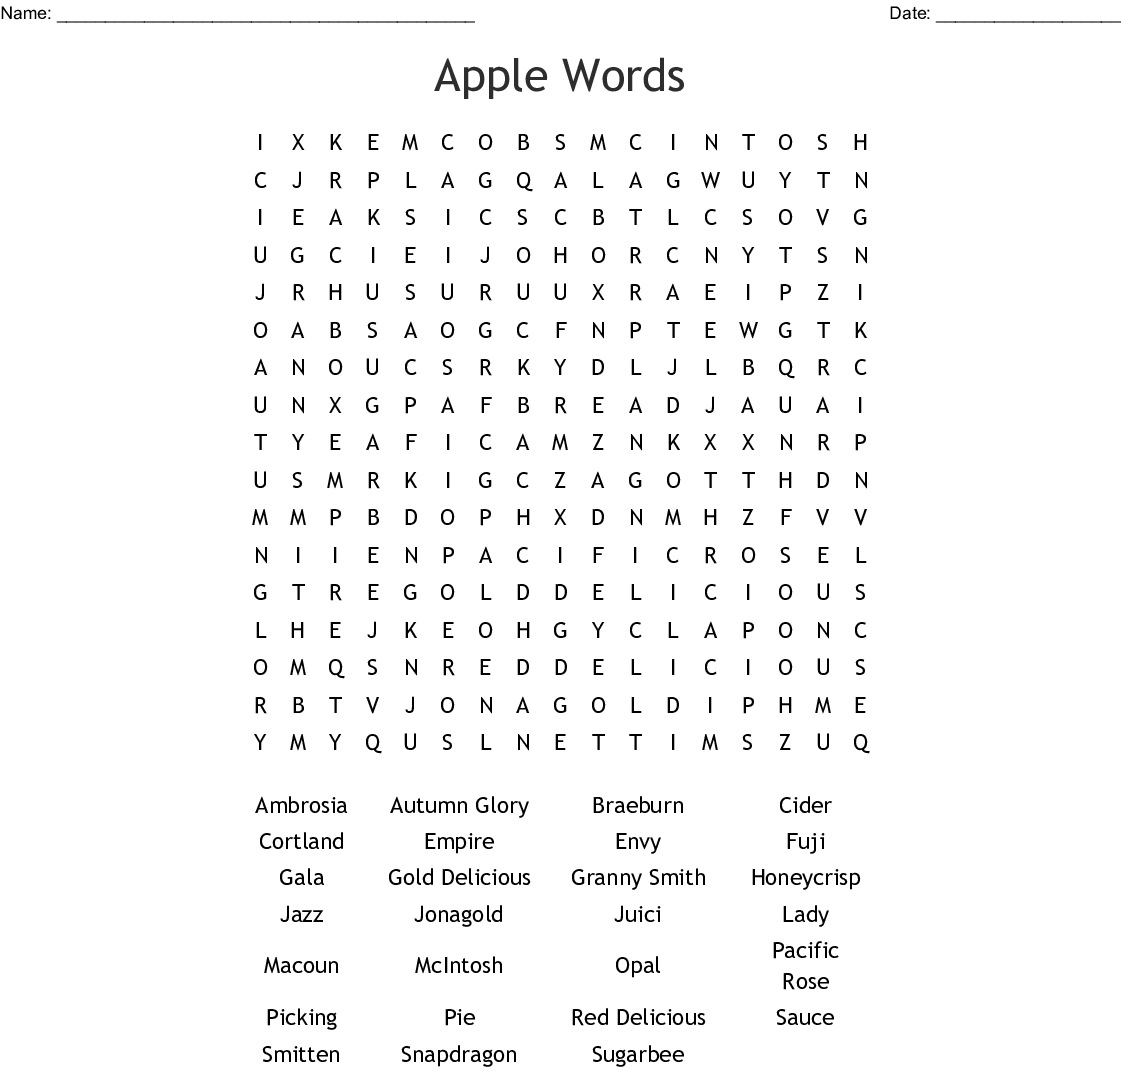 Apple Words Word Search